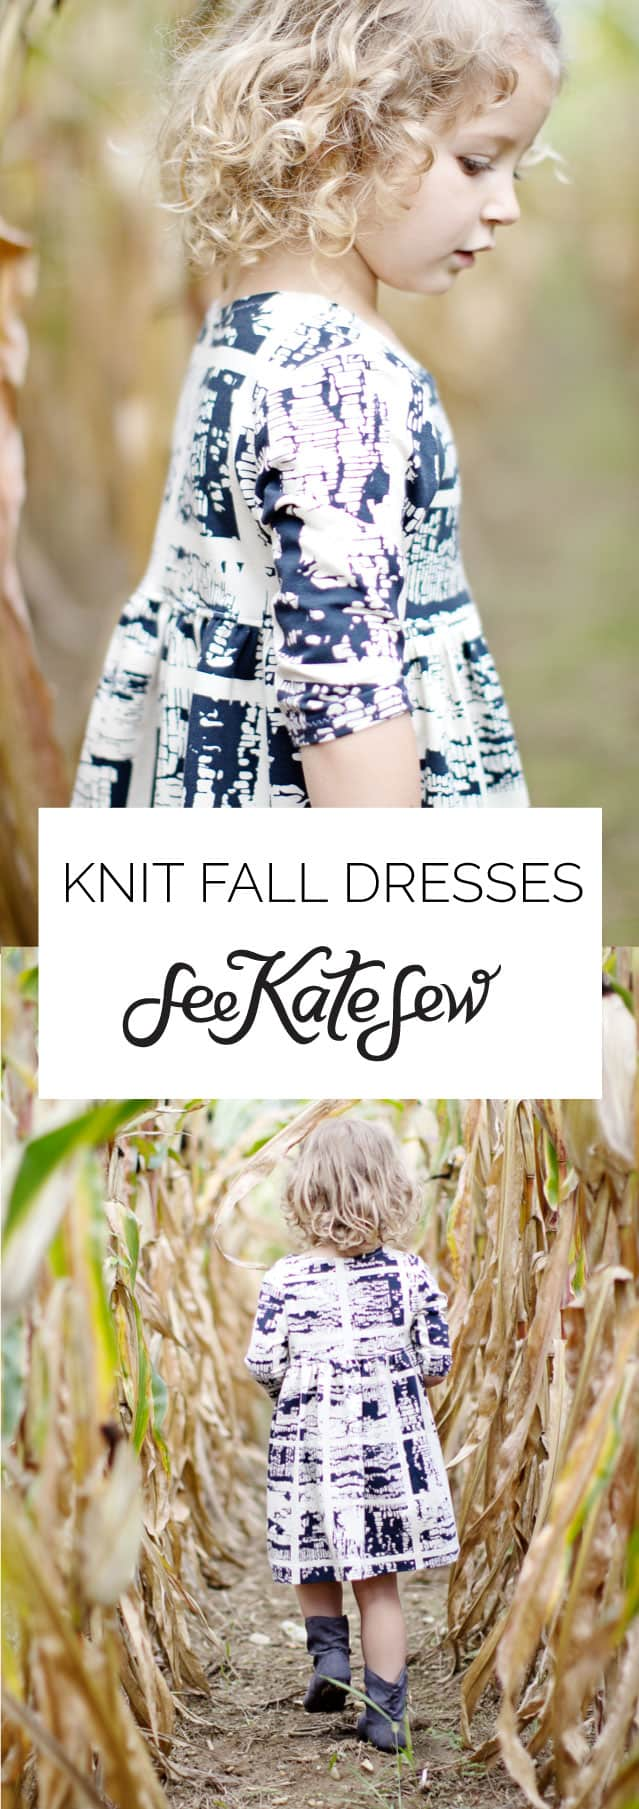 Knit Fall Dresses|See Kate Sew